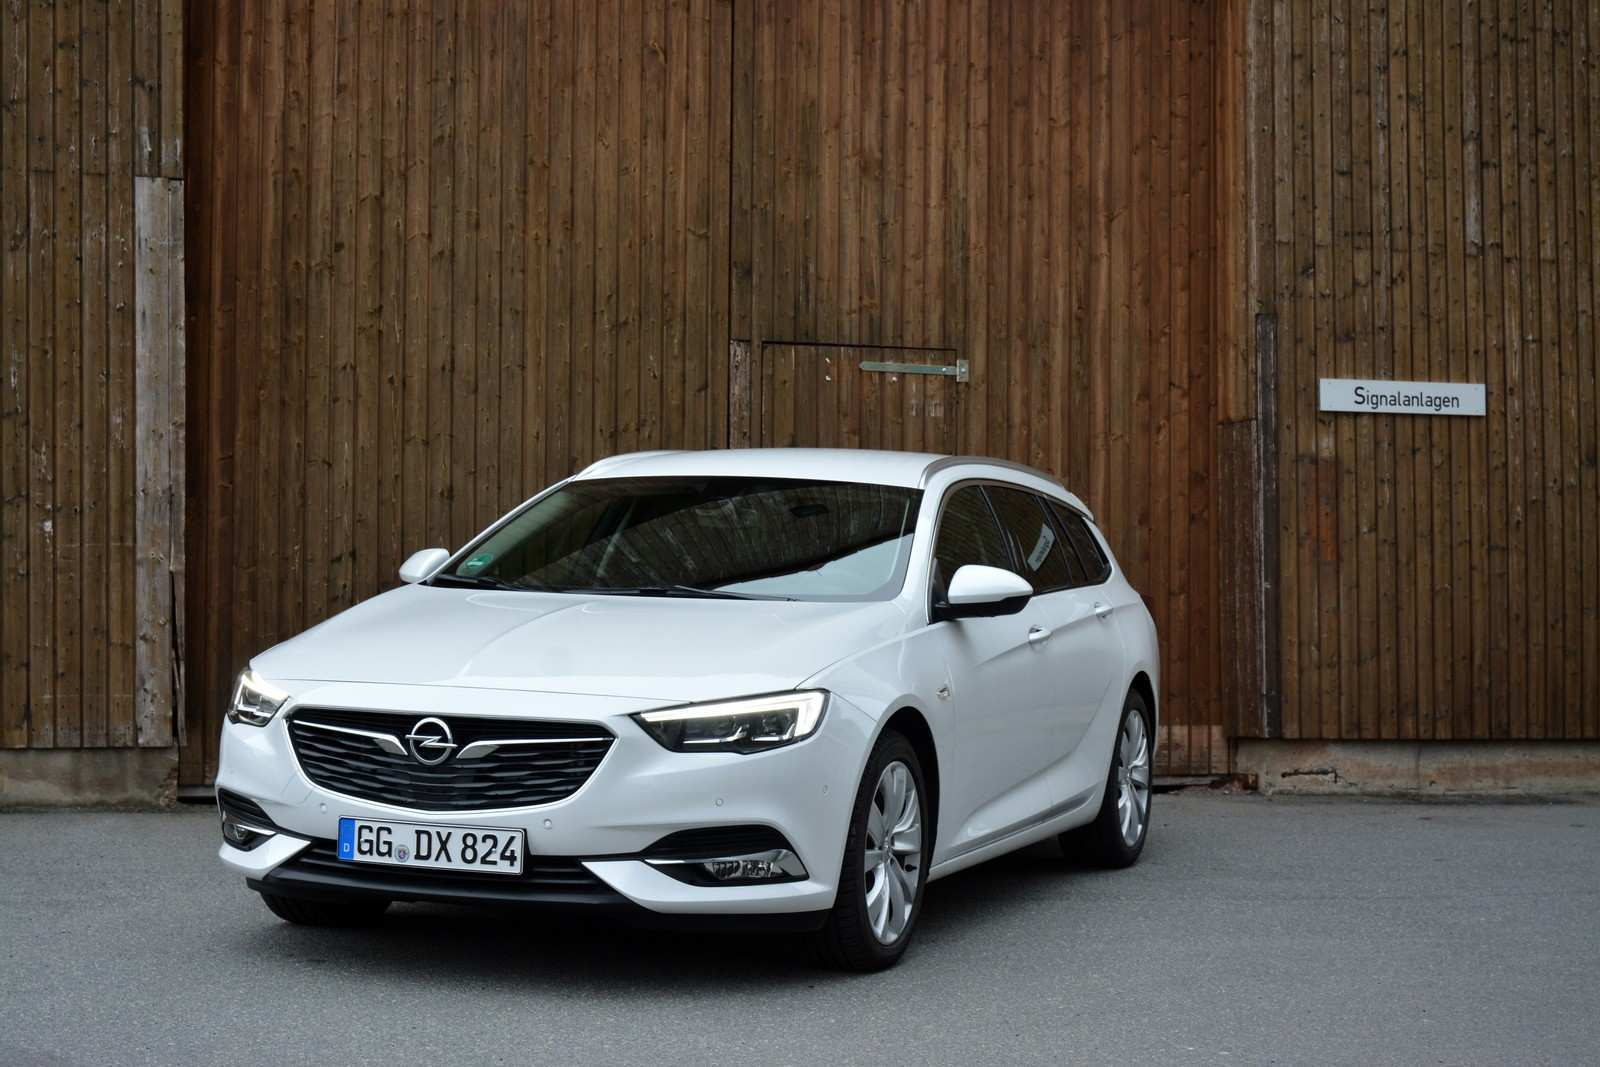 33 The Best 2019 New Opel Insignia Price And Release Date